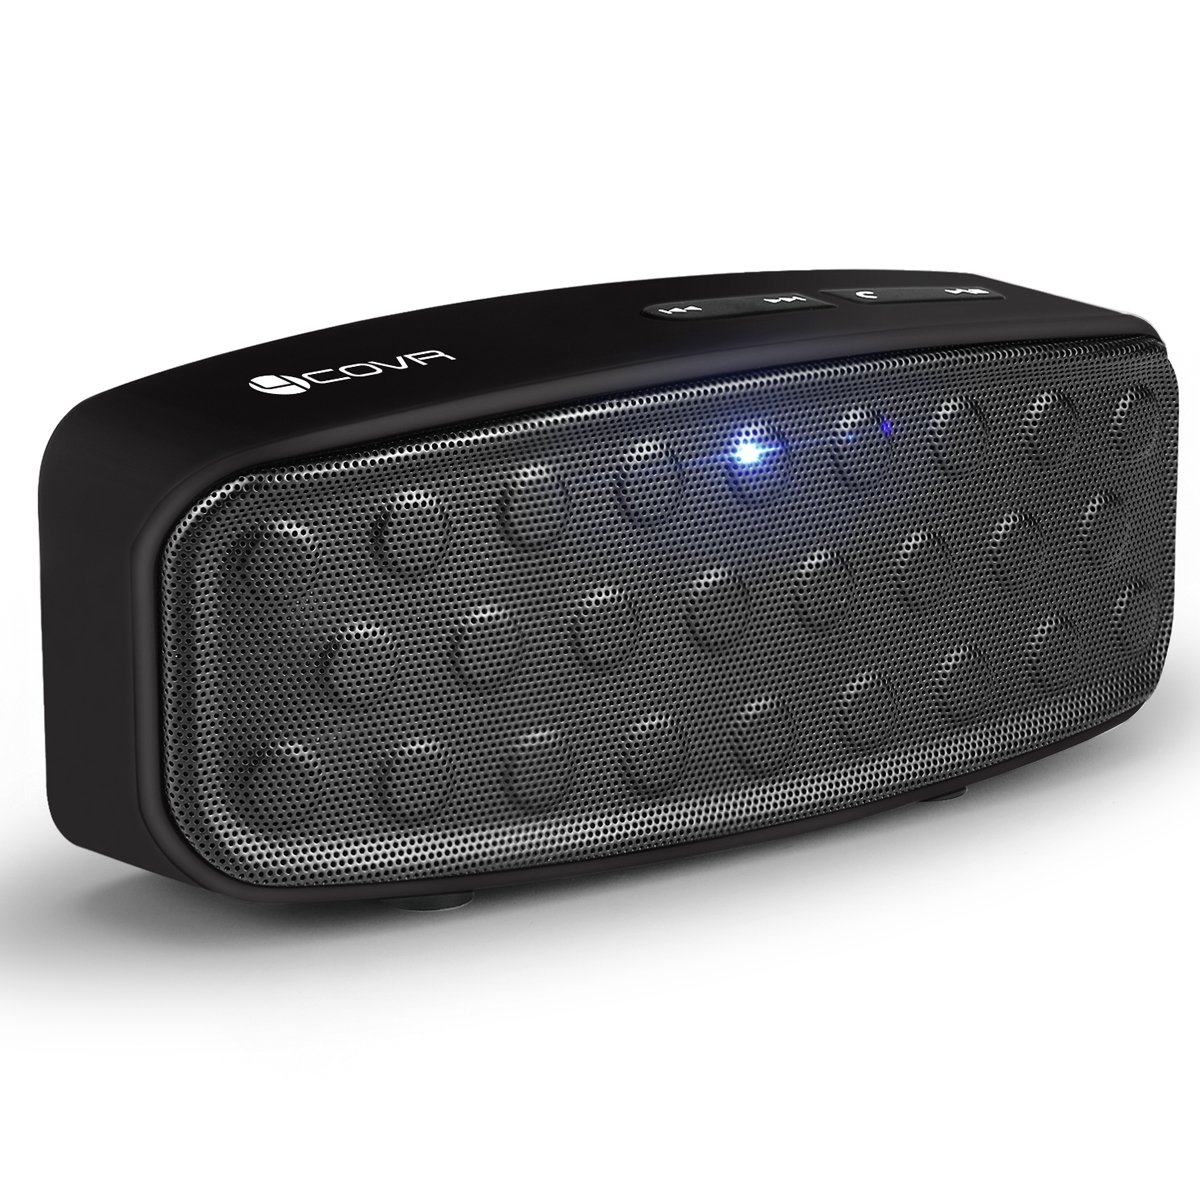 Forcovr Wireless Portable Bluetooth Speaker with 3W Dual-Driver Stereo Sound, Built-in Mic, V4.2, Handsfree Call, Durable Design for Outdoor/Indoor Speakers for iPhone/Andriod, Travel/Home Black